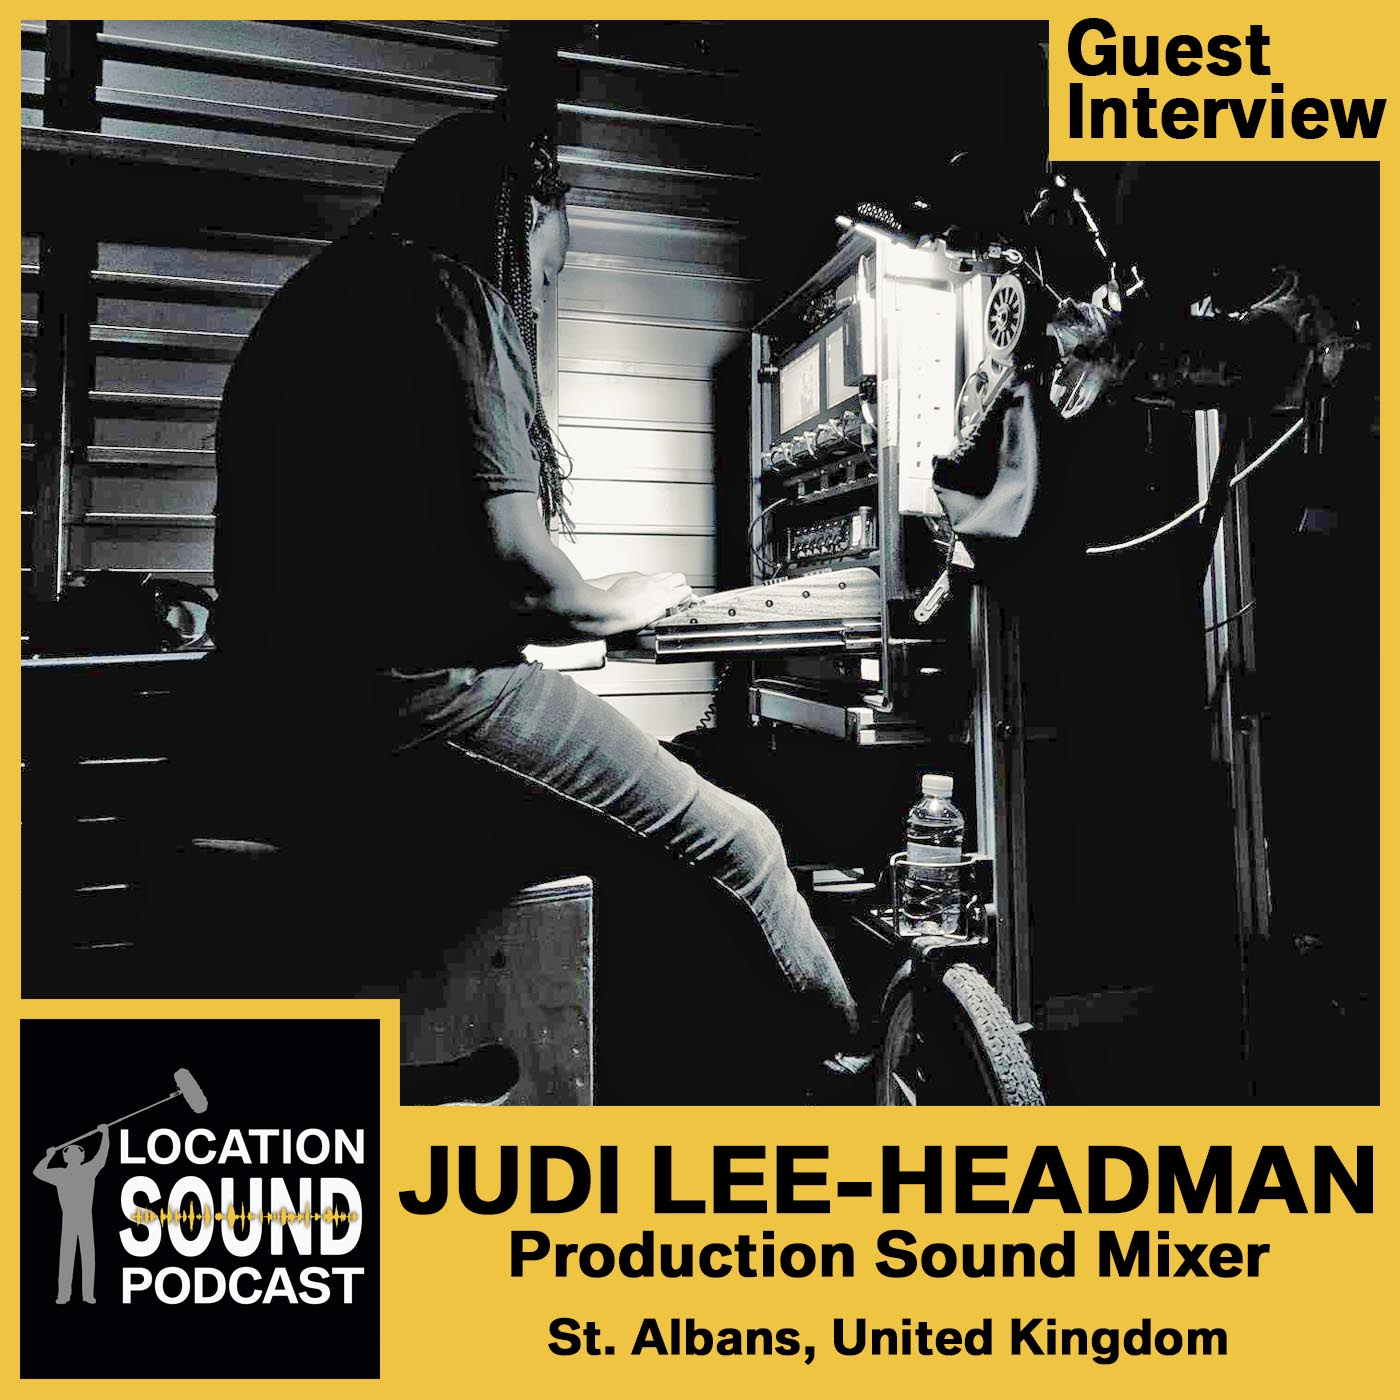 075 Judi Lee-Headman - Production Sound Mixer based out of St. Albans, UK